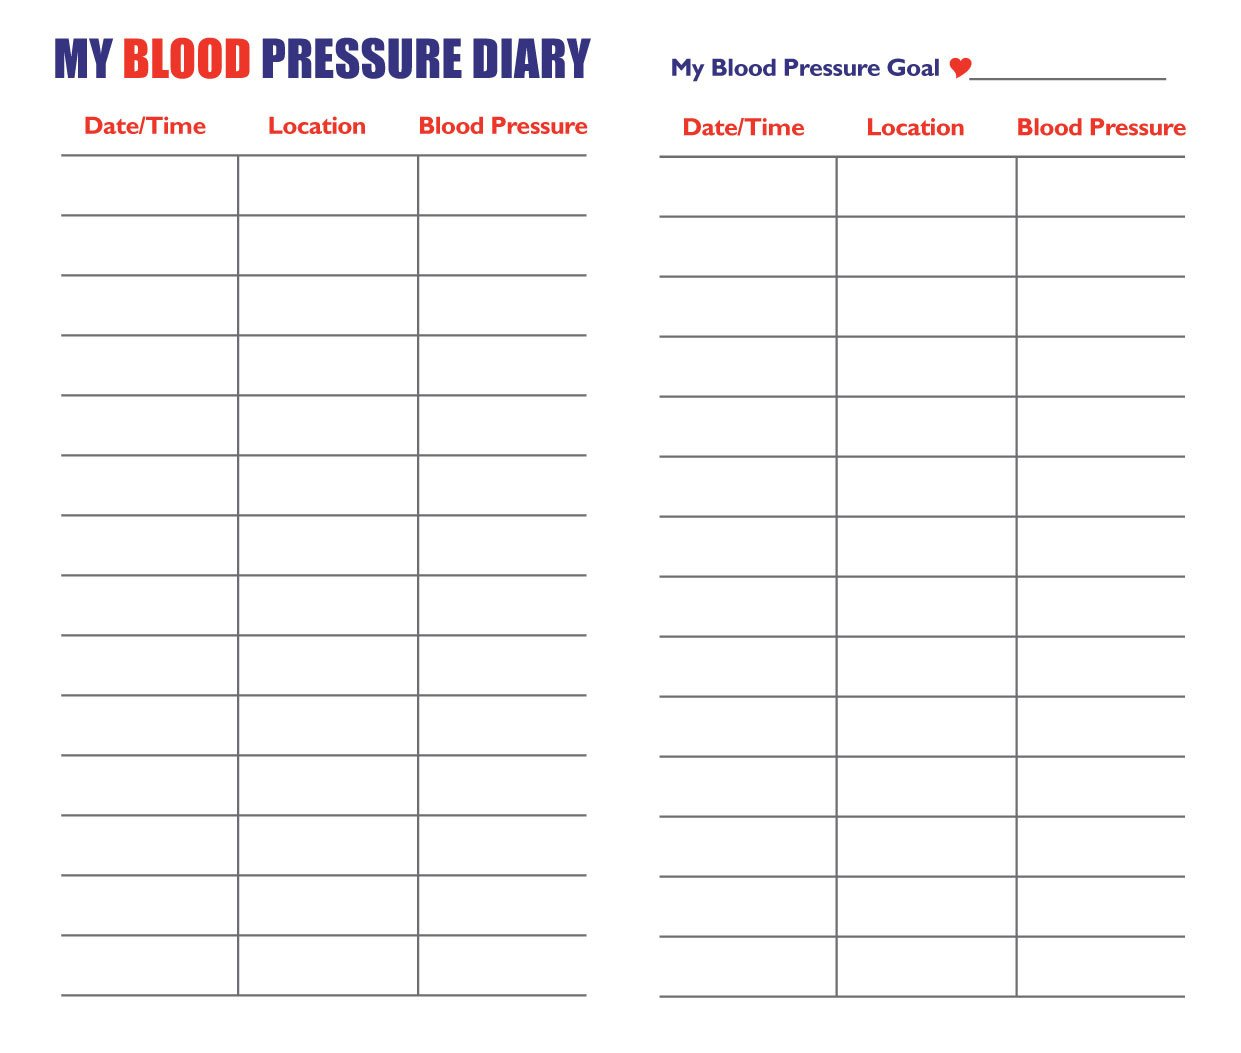 Blood Pressure Chart Template Blood Pressure Chart by Age